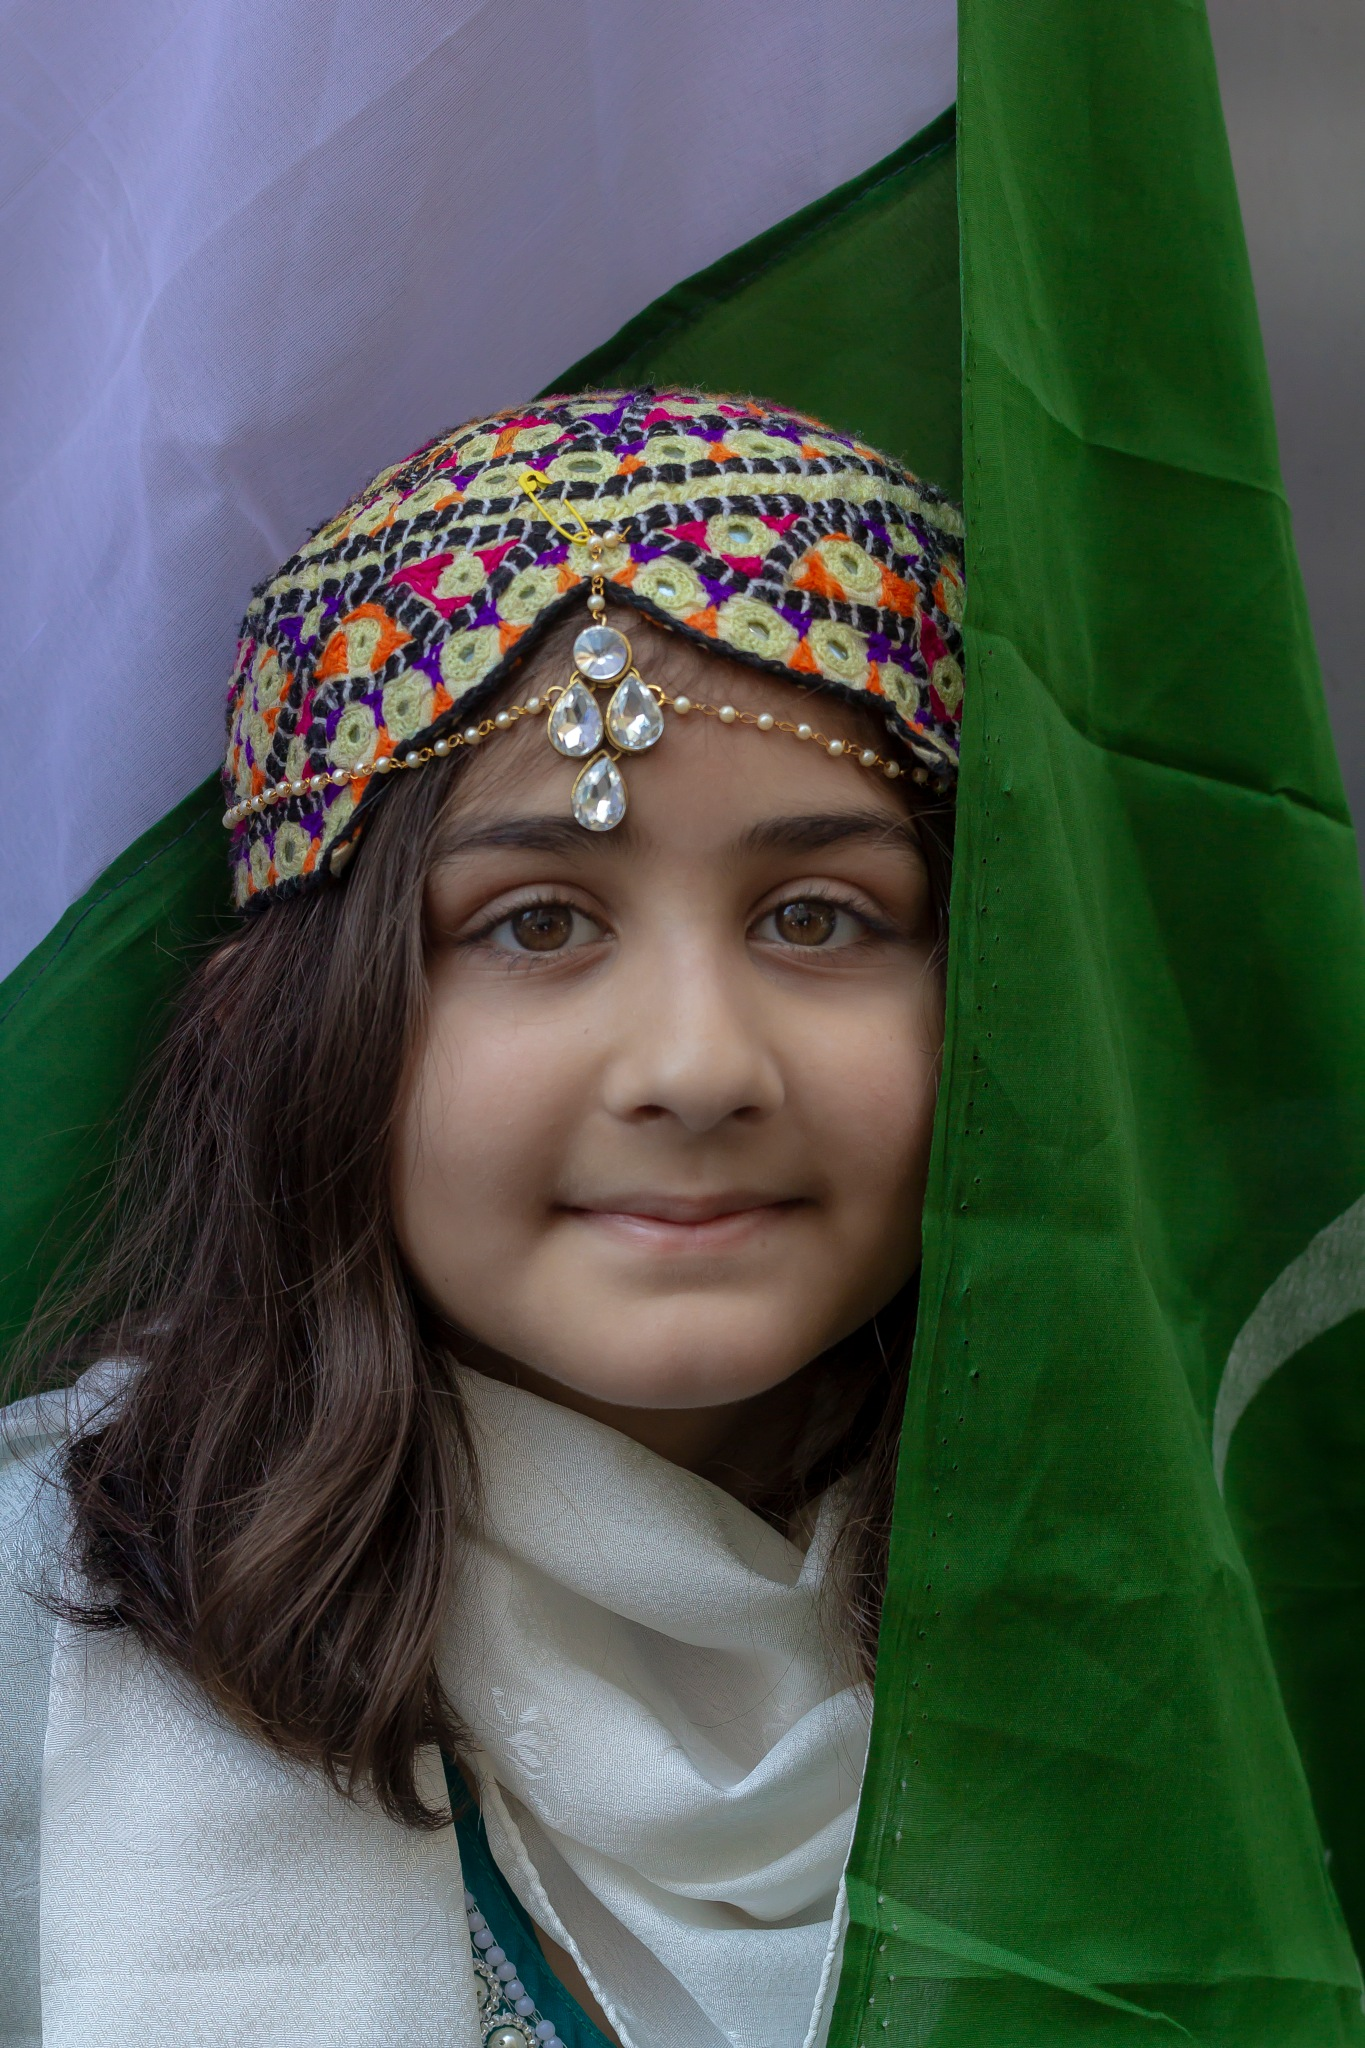 Pakistani Day NYC - Young Girl - Traditional Dress by robertullmann